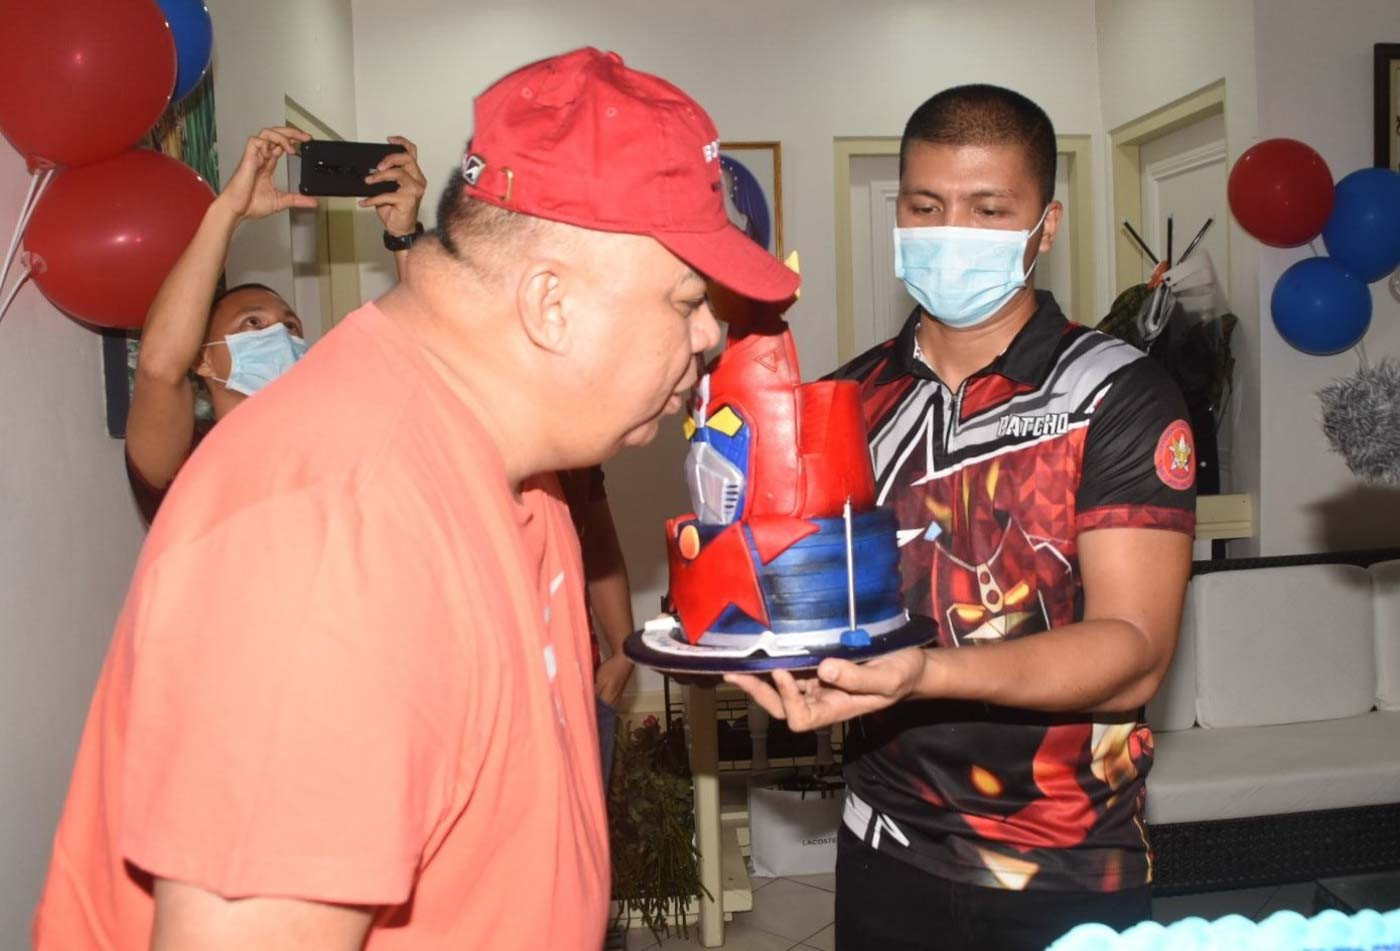 VOLTES 5. NCRPO chief Major General Debold Sinas blows out the candle on his special birthday cake on May 8, 2020. NCRPO photos.